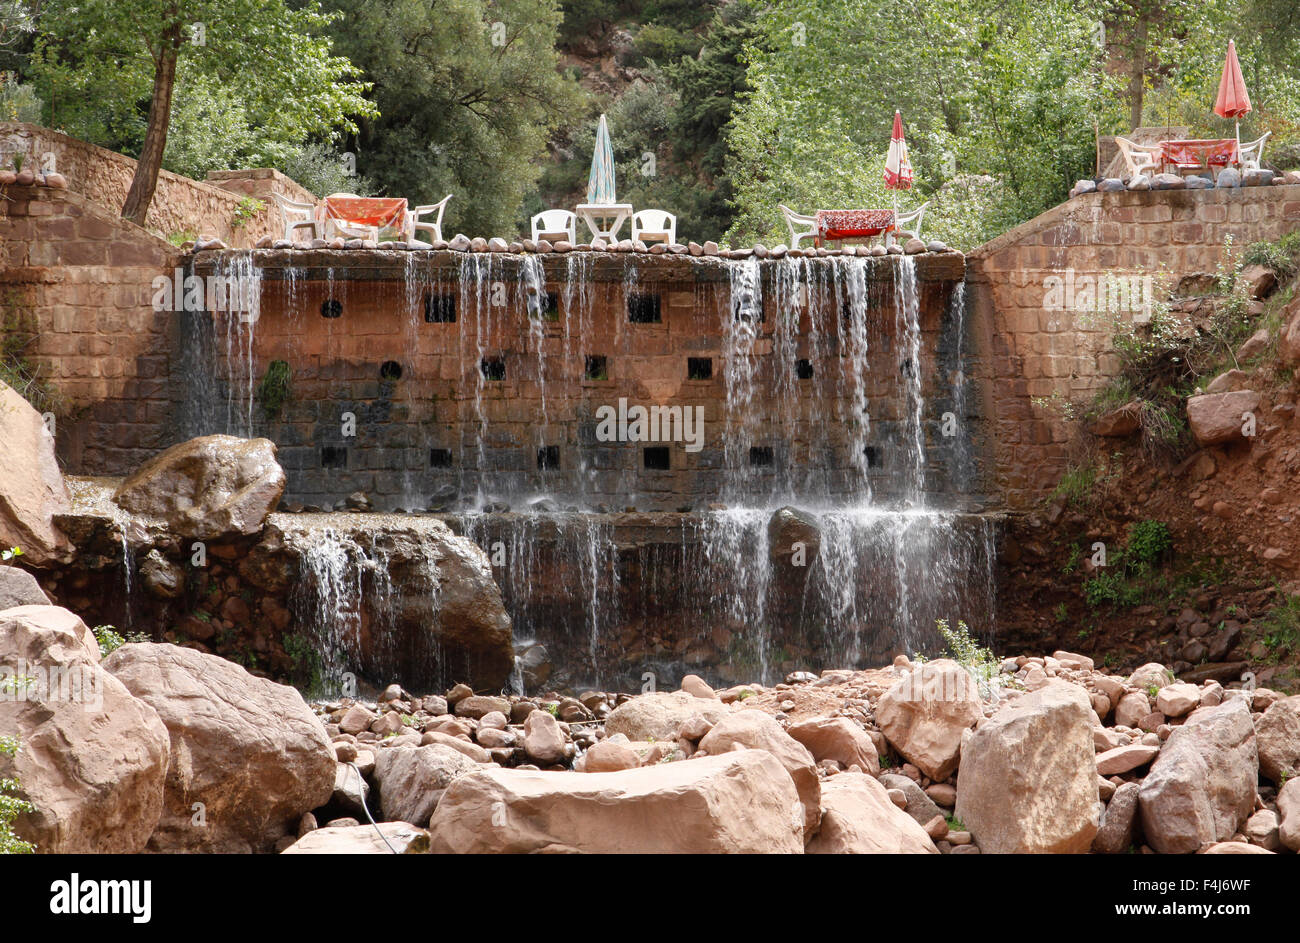 Cafe at the top of a small waterfall in the Ourika Valley near Setti Fatma, around 50 km south of Marrakesh, Morocco - Stock Image